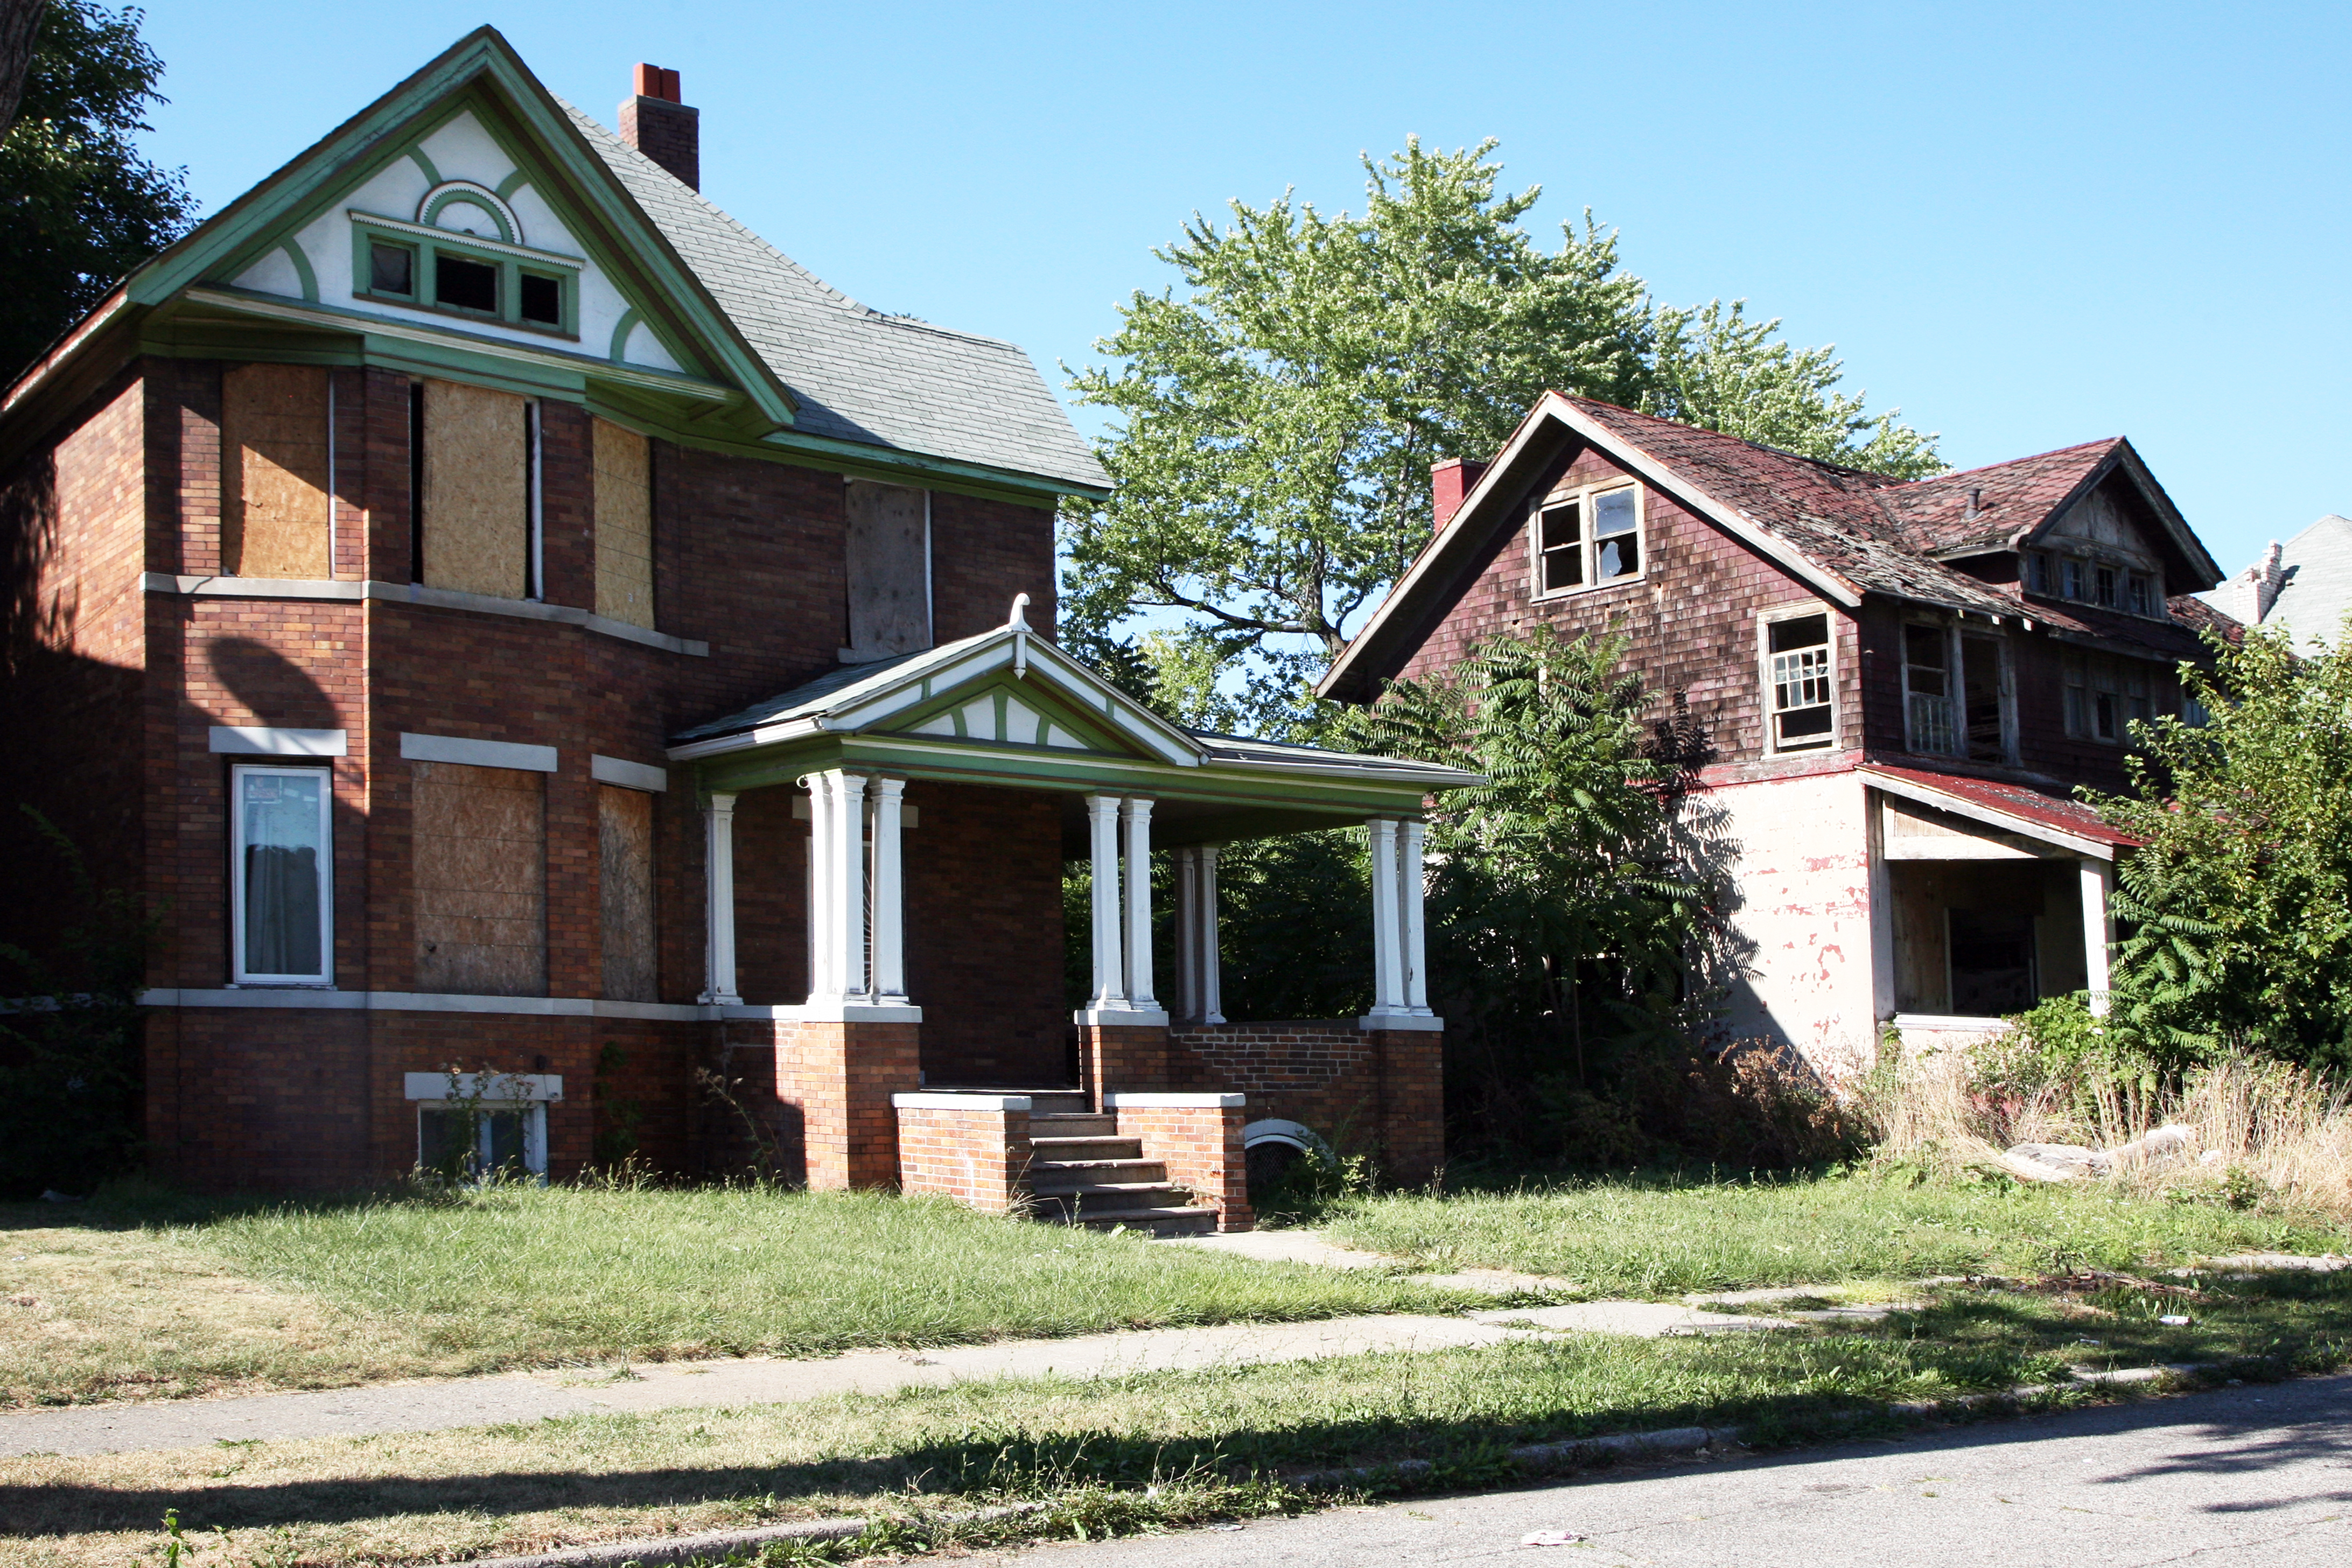 Two abandoned homes in Detroit.